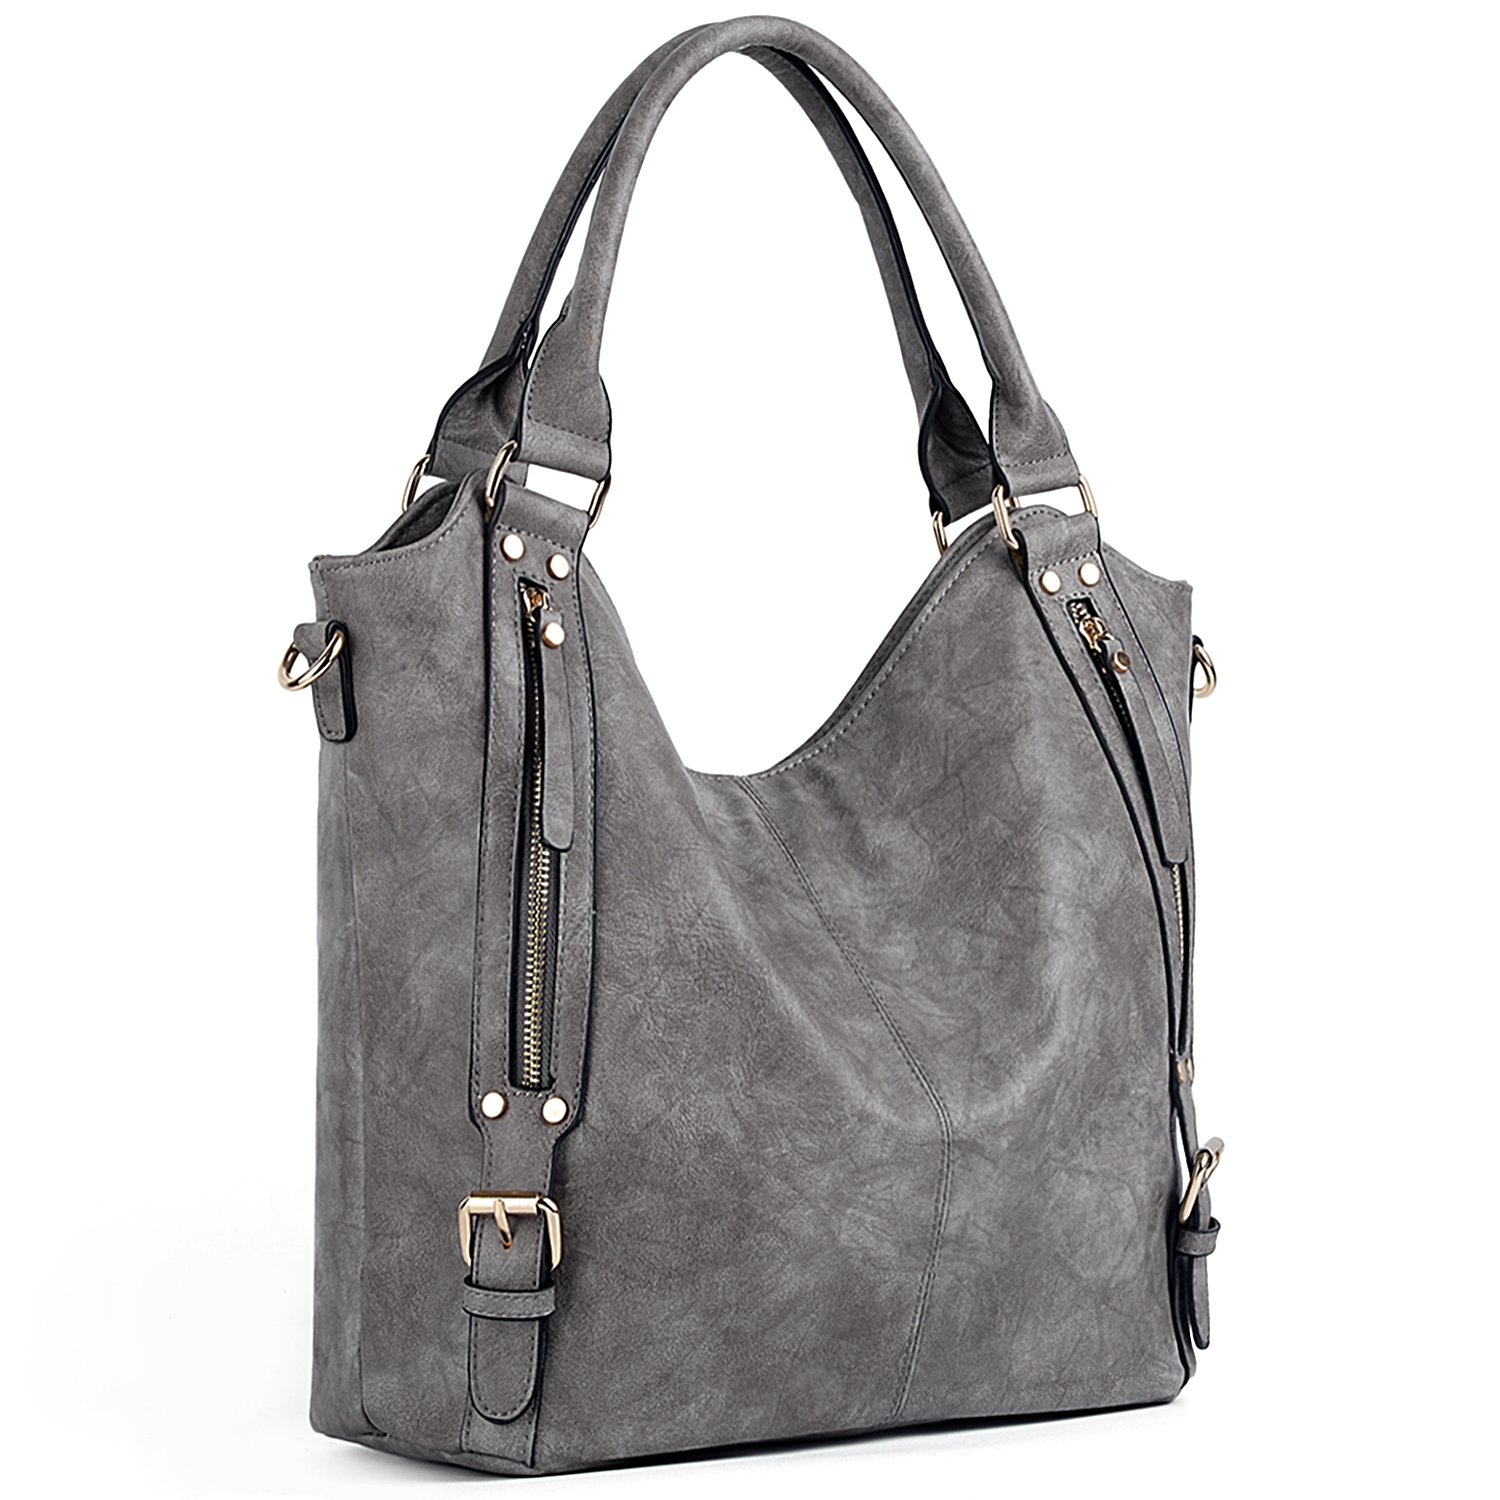 UTO Women Handbags Hobo Shoulder Bags Tote PU Leather Handbags Fashion Large Capacity Bags A Grey